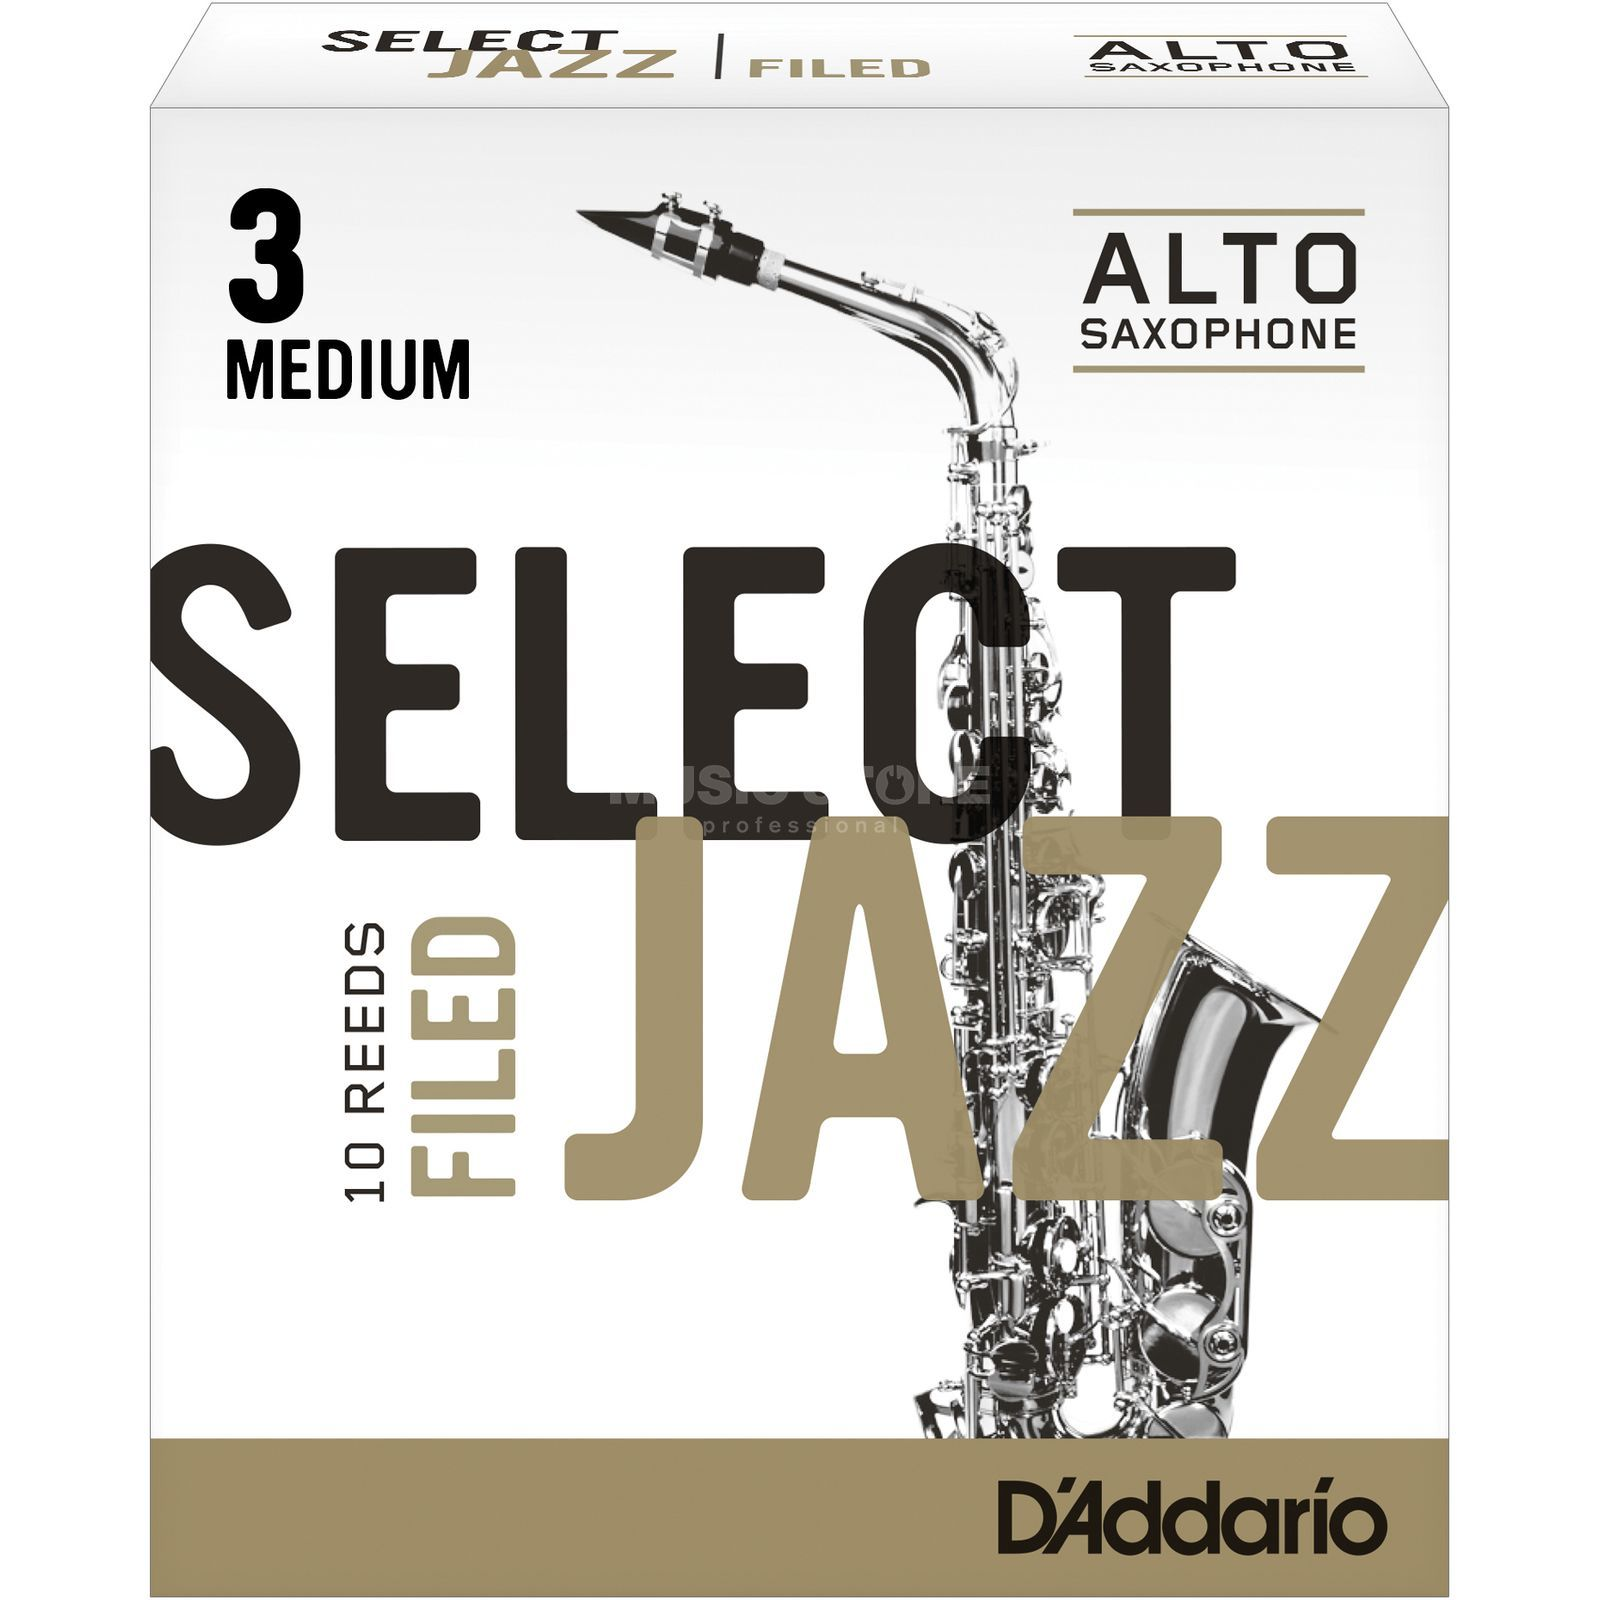 D'Addario Woodwinds Alto Sax Reeds 3M Box of 10 Zdjęcie produktu